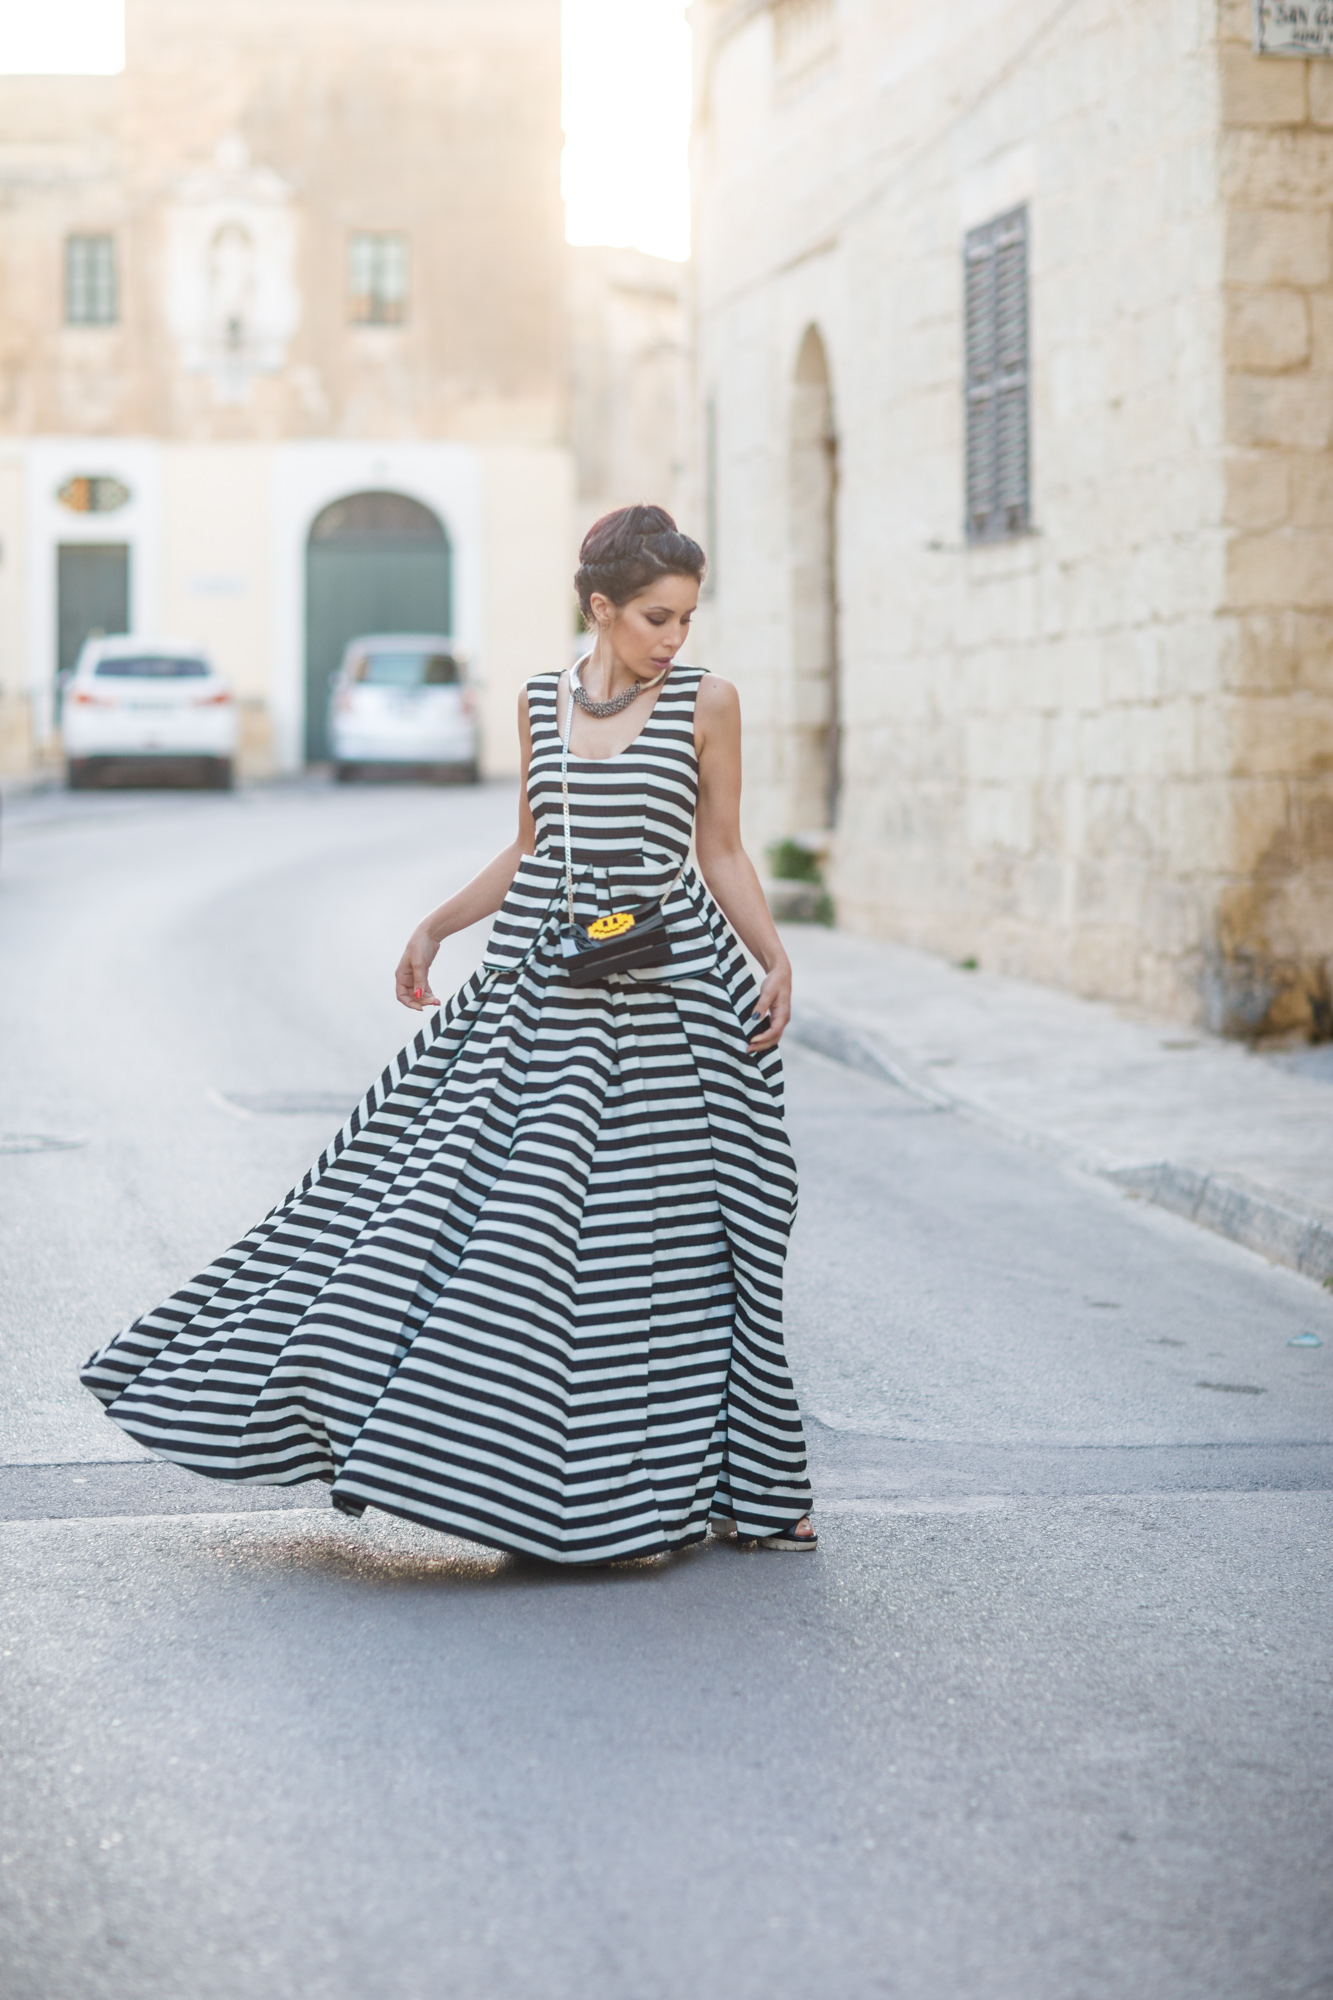 malta fashion week 2018